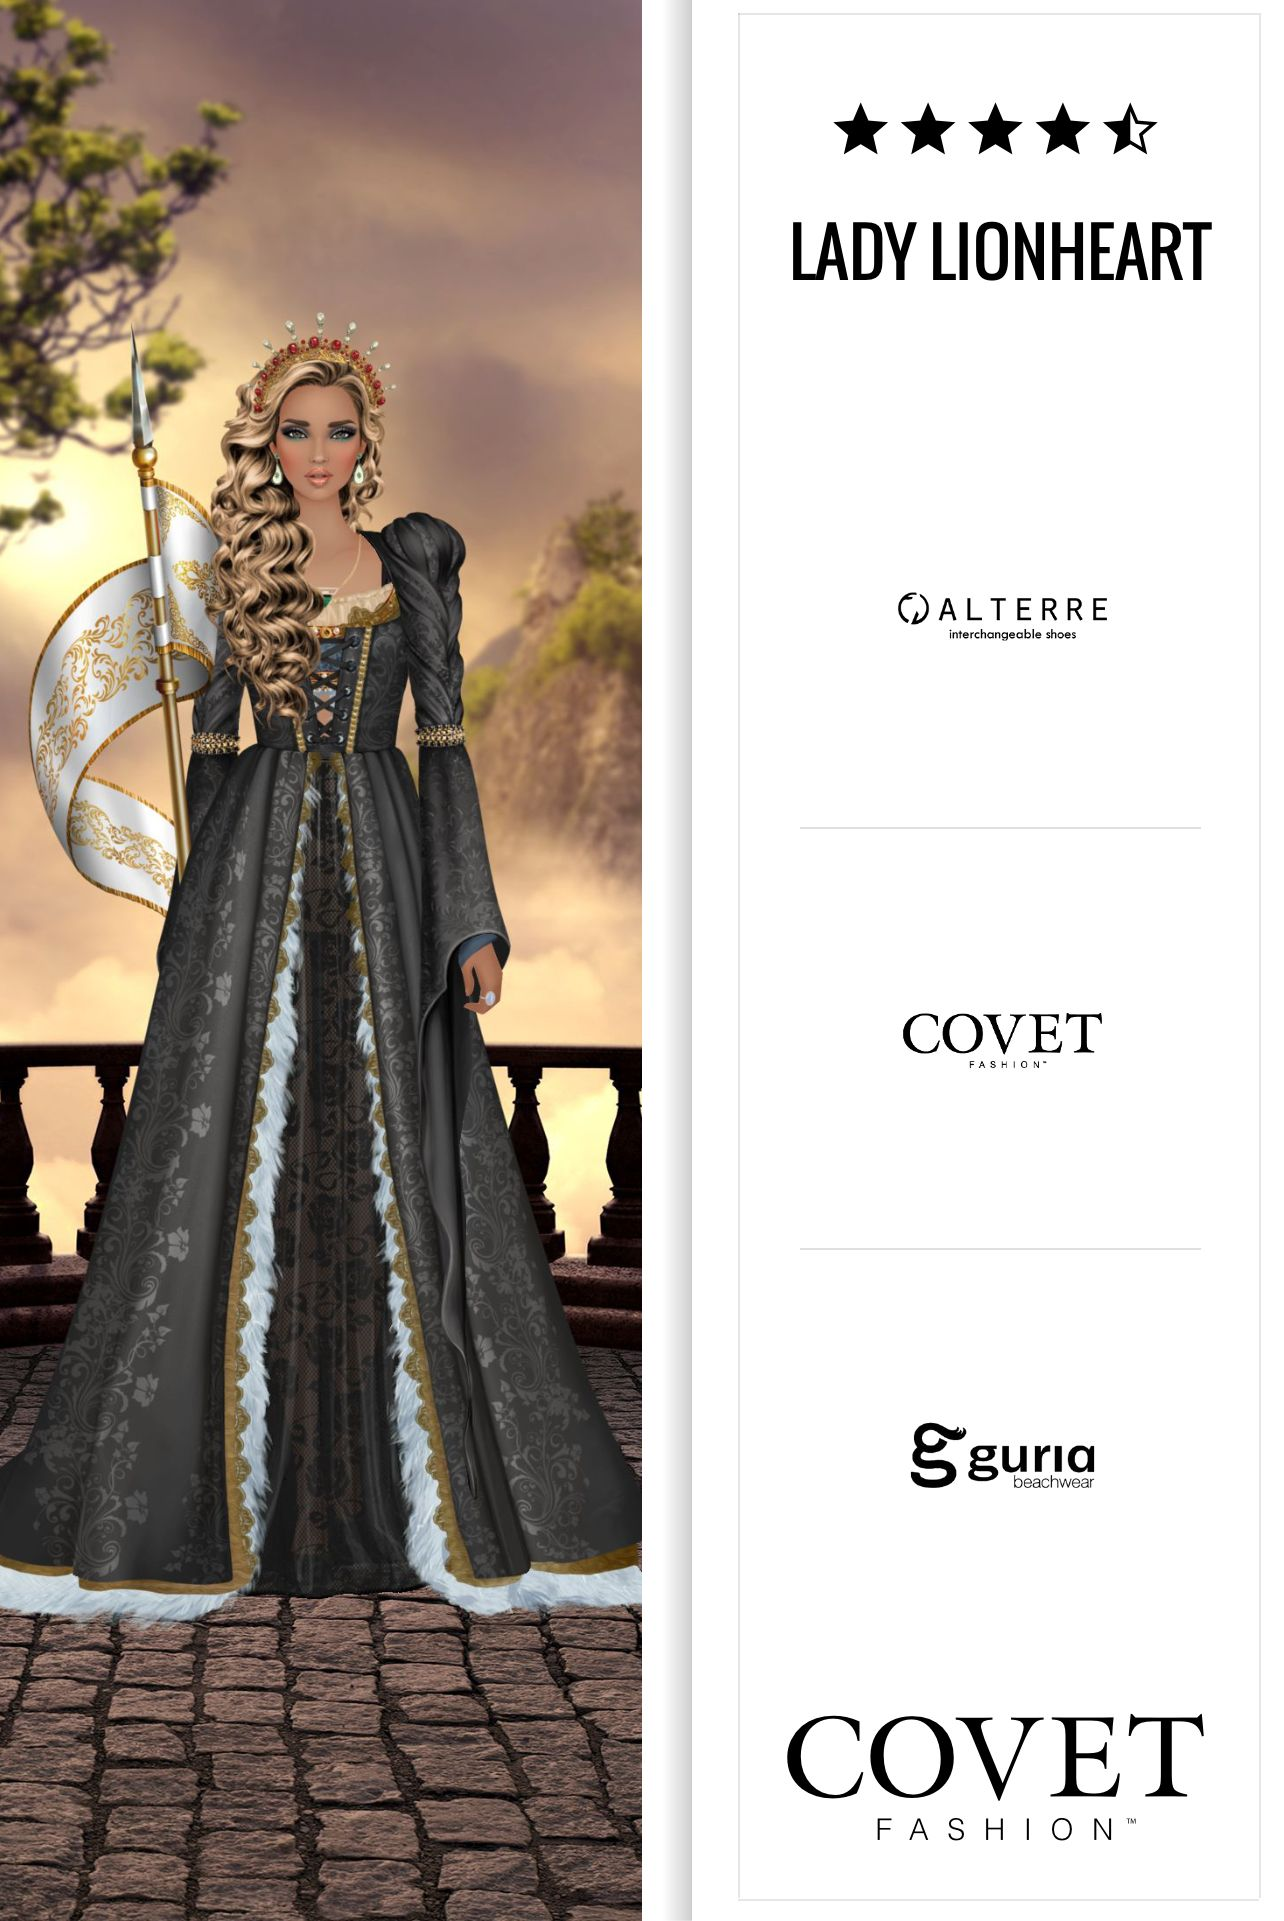 Pin By Rod C L On Covet Fashion In 2021 Formal Dresses Long Victorian Dress Formal Dresses [ 1921 x 1284 Pixel ]